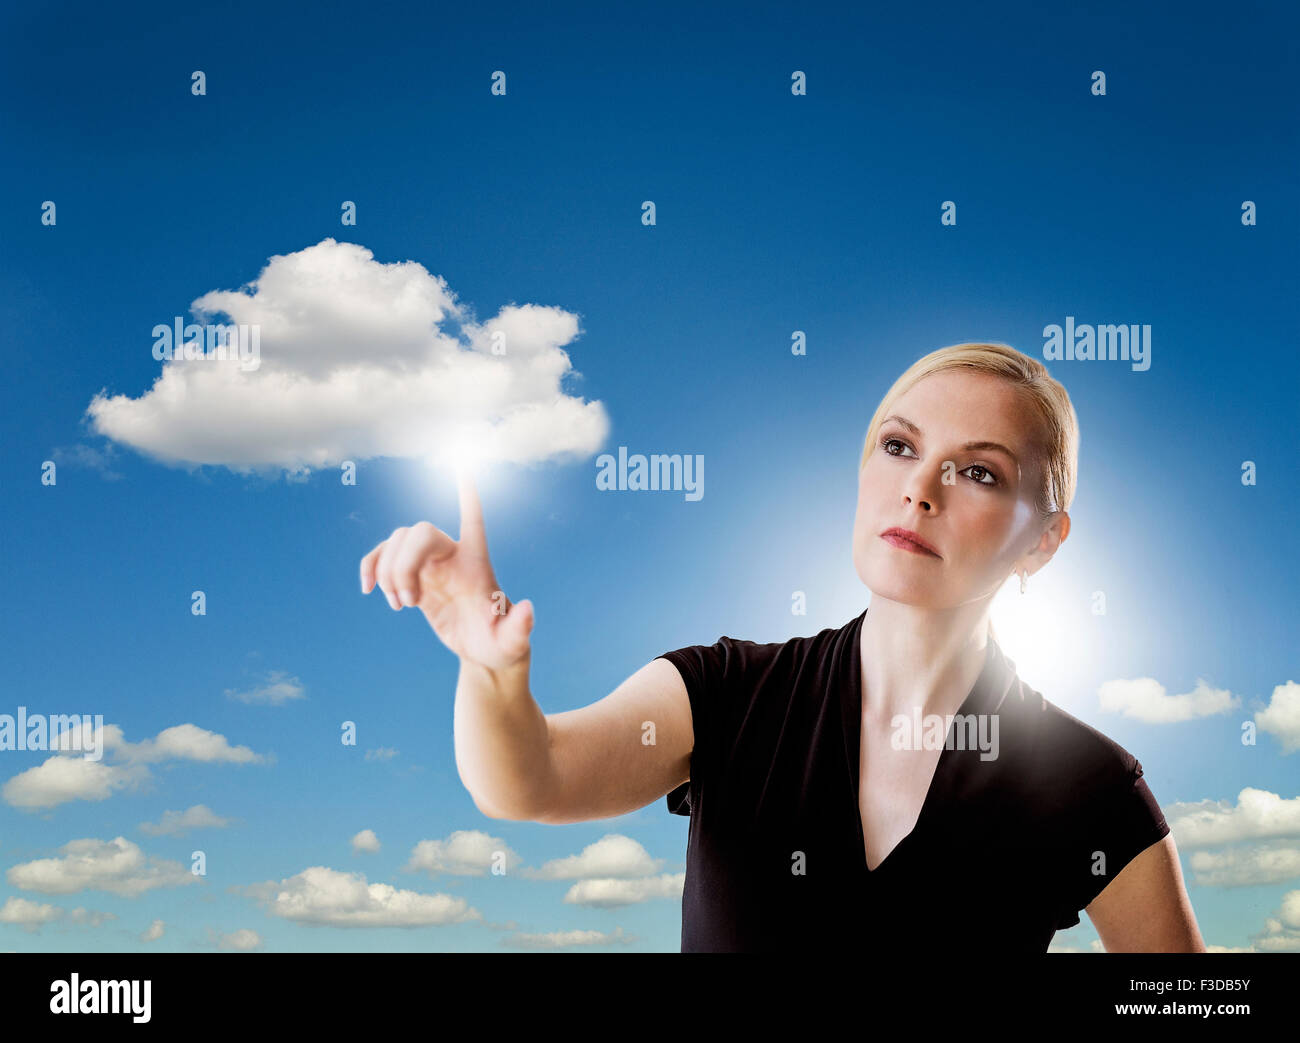 Portrait of woman touching cloud - Stock Image